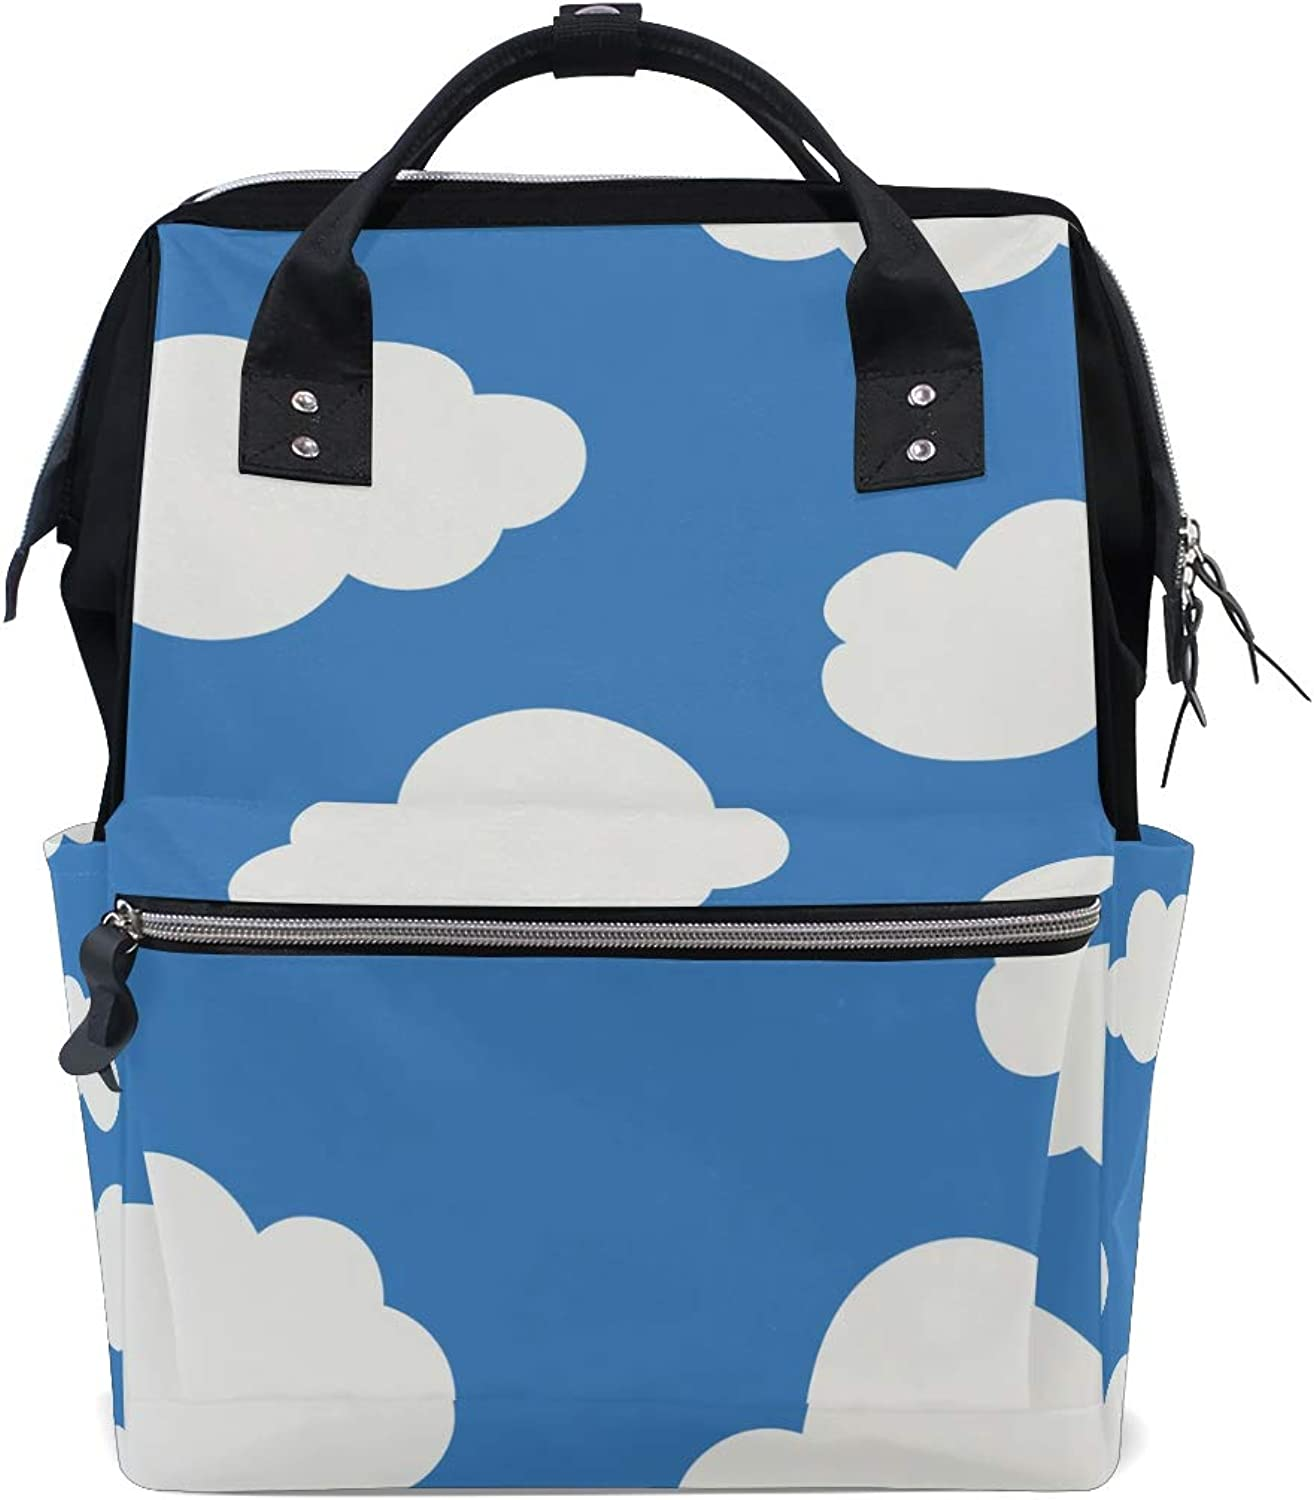 6574a2212639 White Cloud bluee Background Canvas Bag Campus Backpack Travel ...